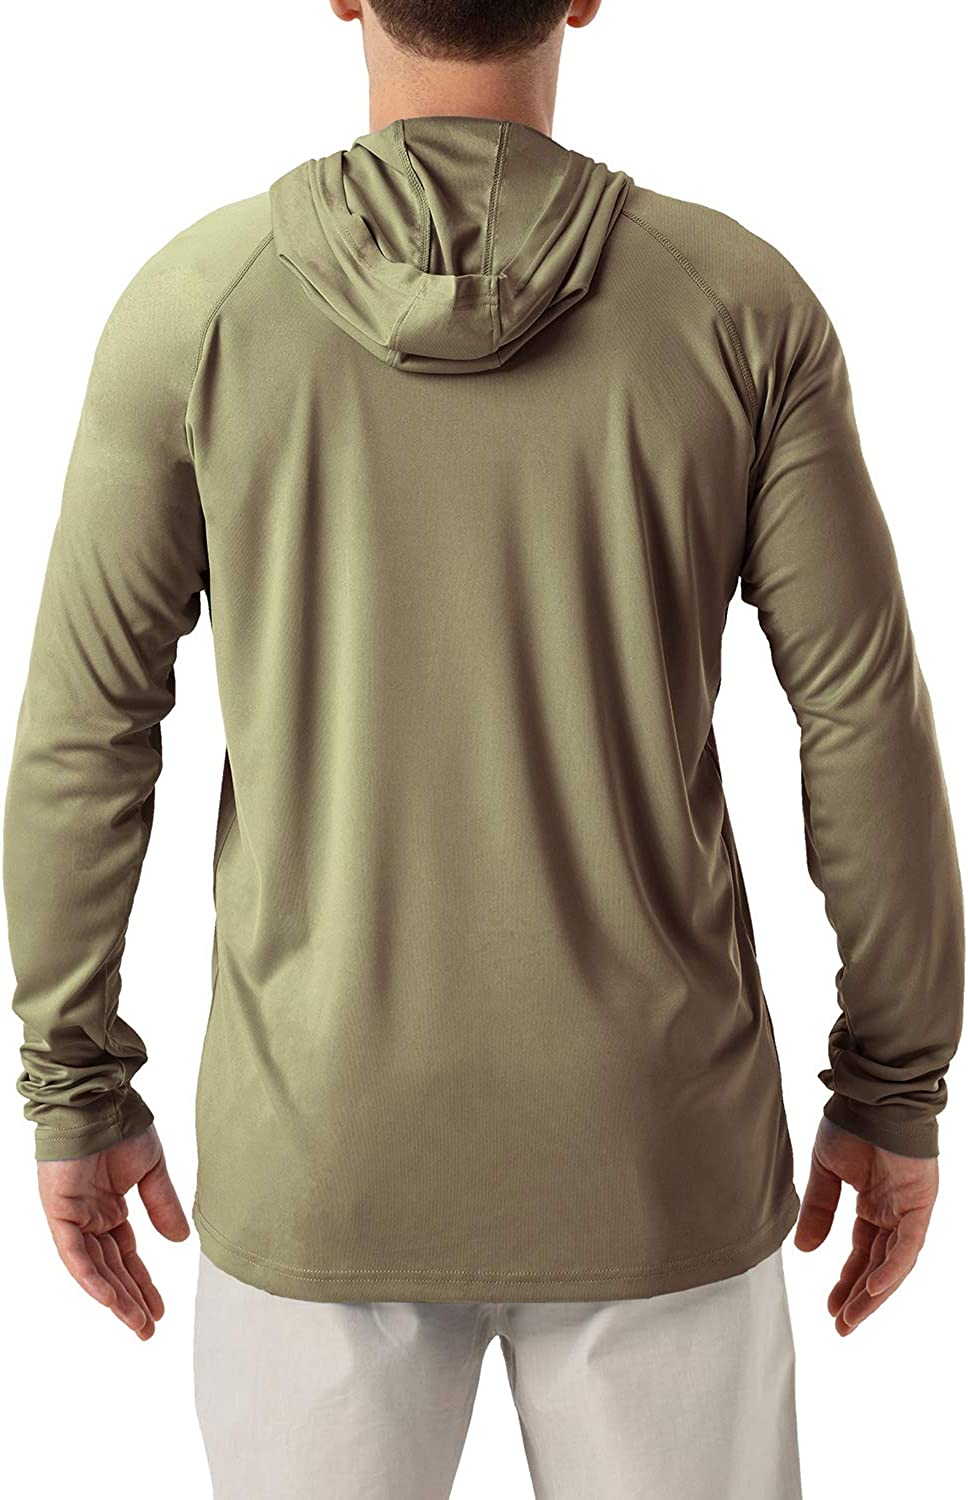 Mens UPF 50 UV Sun Protection Hoodie Long Sleeve Rash Guard Hiking Fishing Swim T Shirt